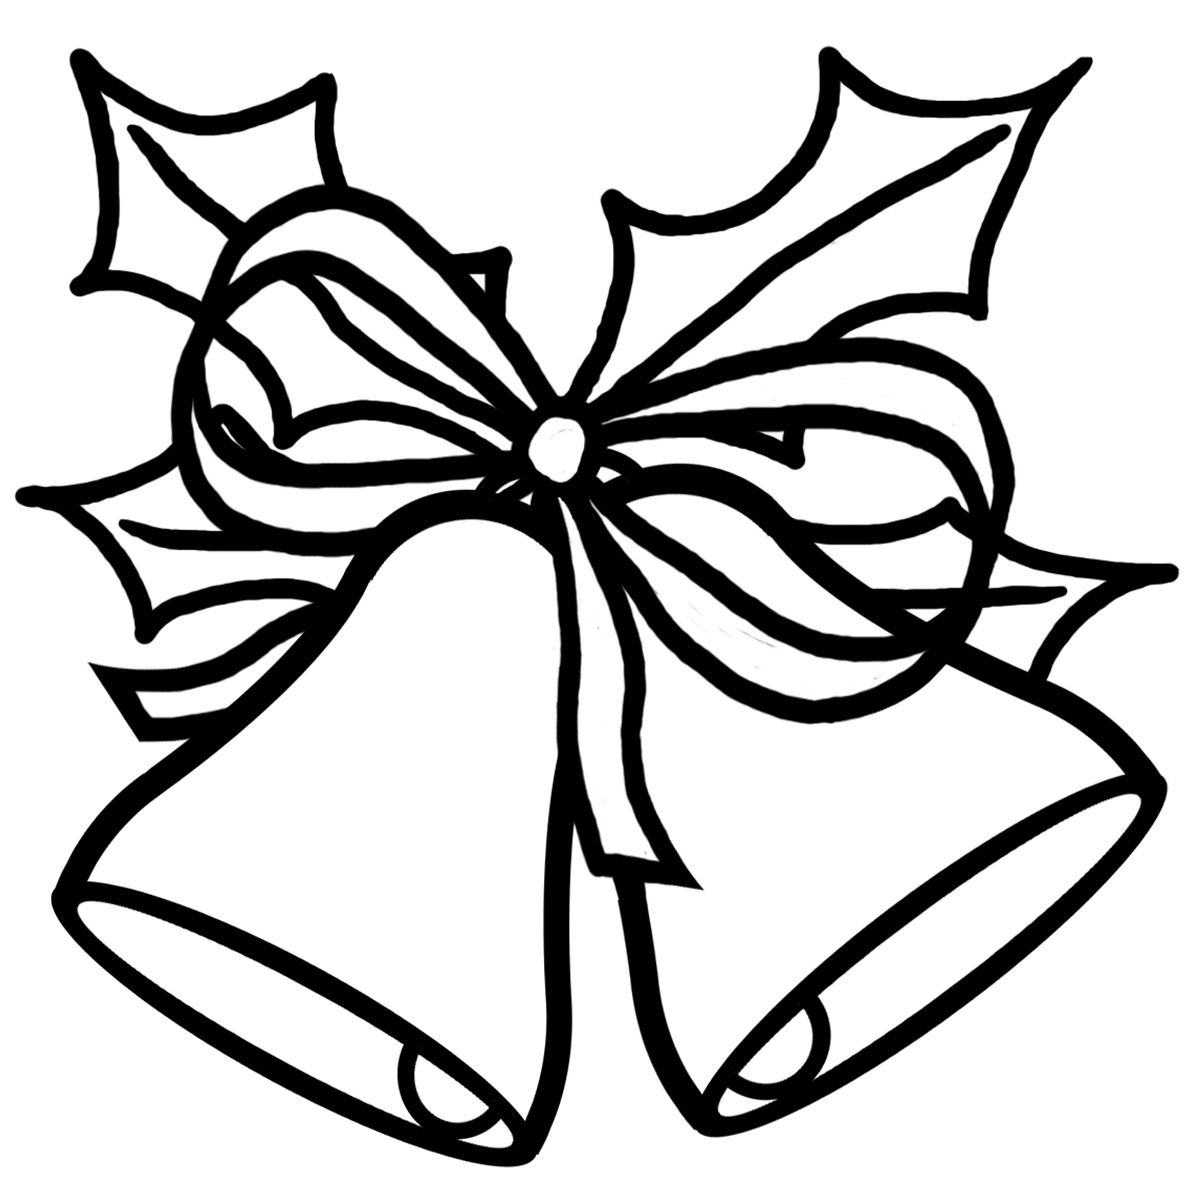 Christmas ornament black and white - Clip Art Black And White Black And White Clip Art Illustration Of Holiday Or